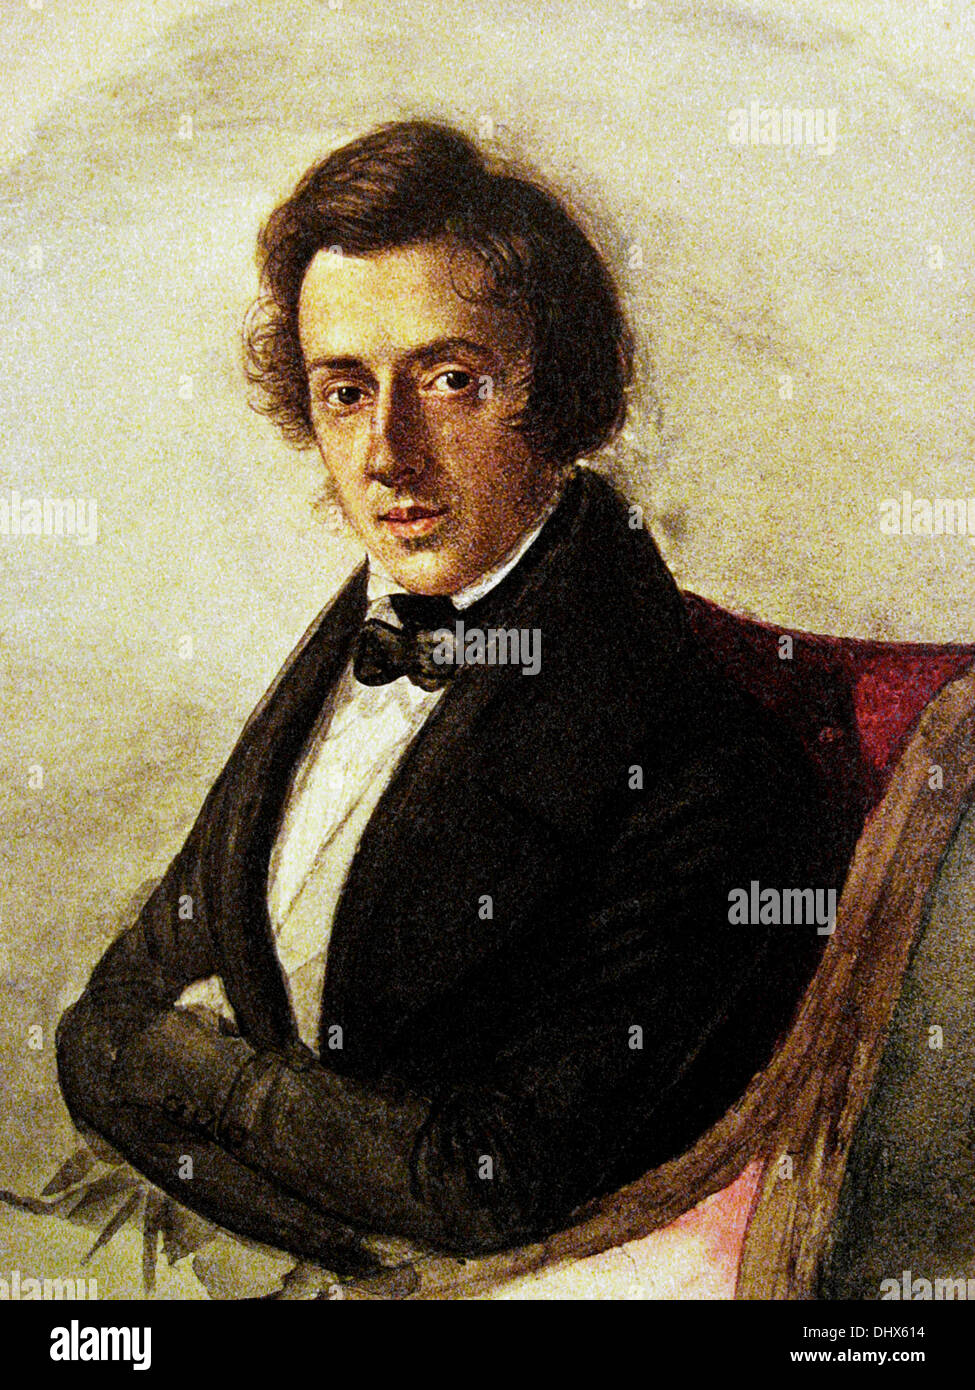 Portrait of Frederick Chopin at age 25 - by Maria Wodzinska, 1835 - Stock Image